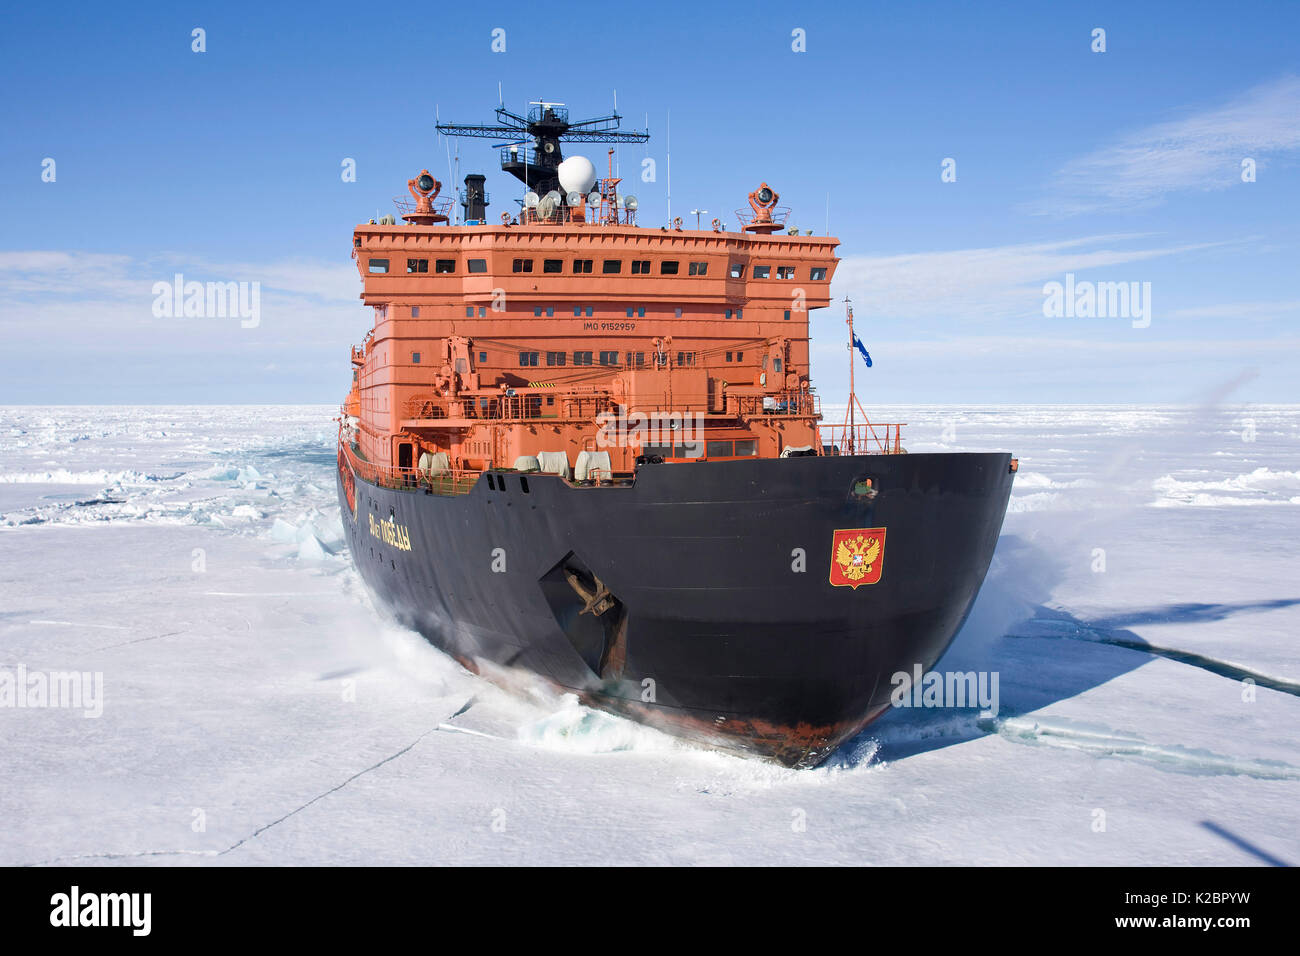 The world's largest nuclear-powered icebreaker, '50 years of Victory', on the way to the North Pole, Russian Arctic, July 2008. All non-editorial uses must be cleared individually. - Stock Image